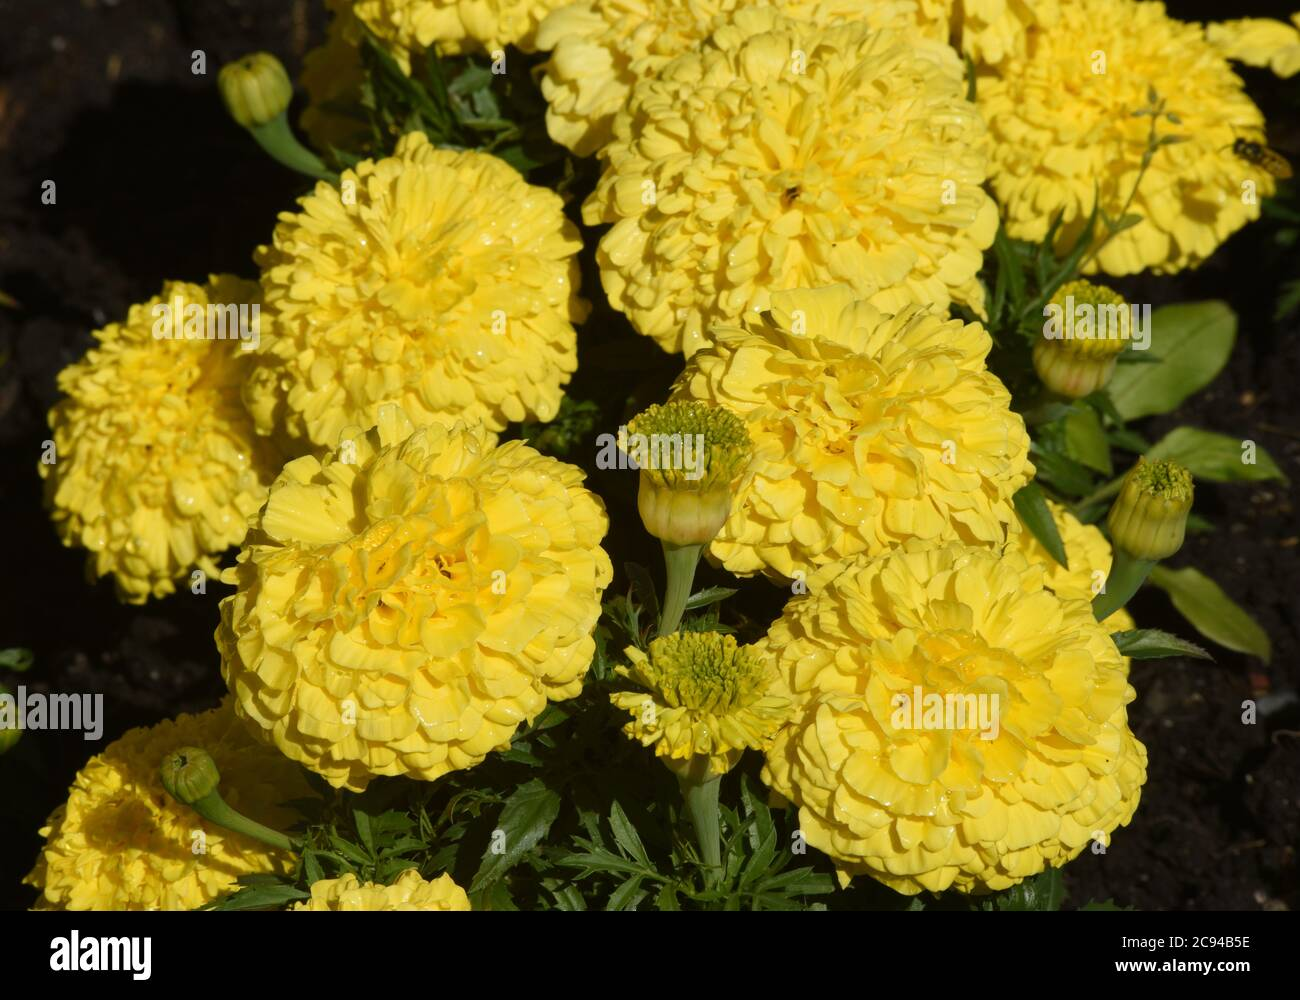 Yellow French Marigolds (tagetes patula) bloom in the summer sun in Victoria, British Columbia, Canada on Vancouver Island. Stock Photo